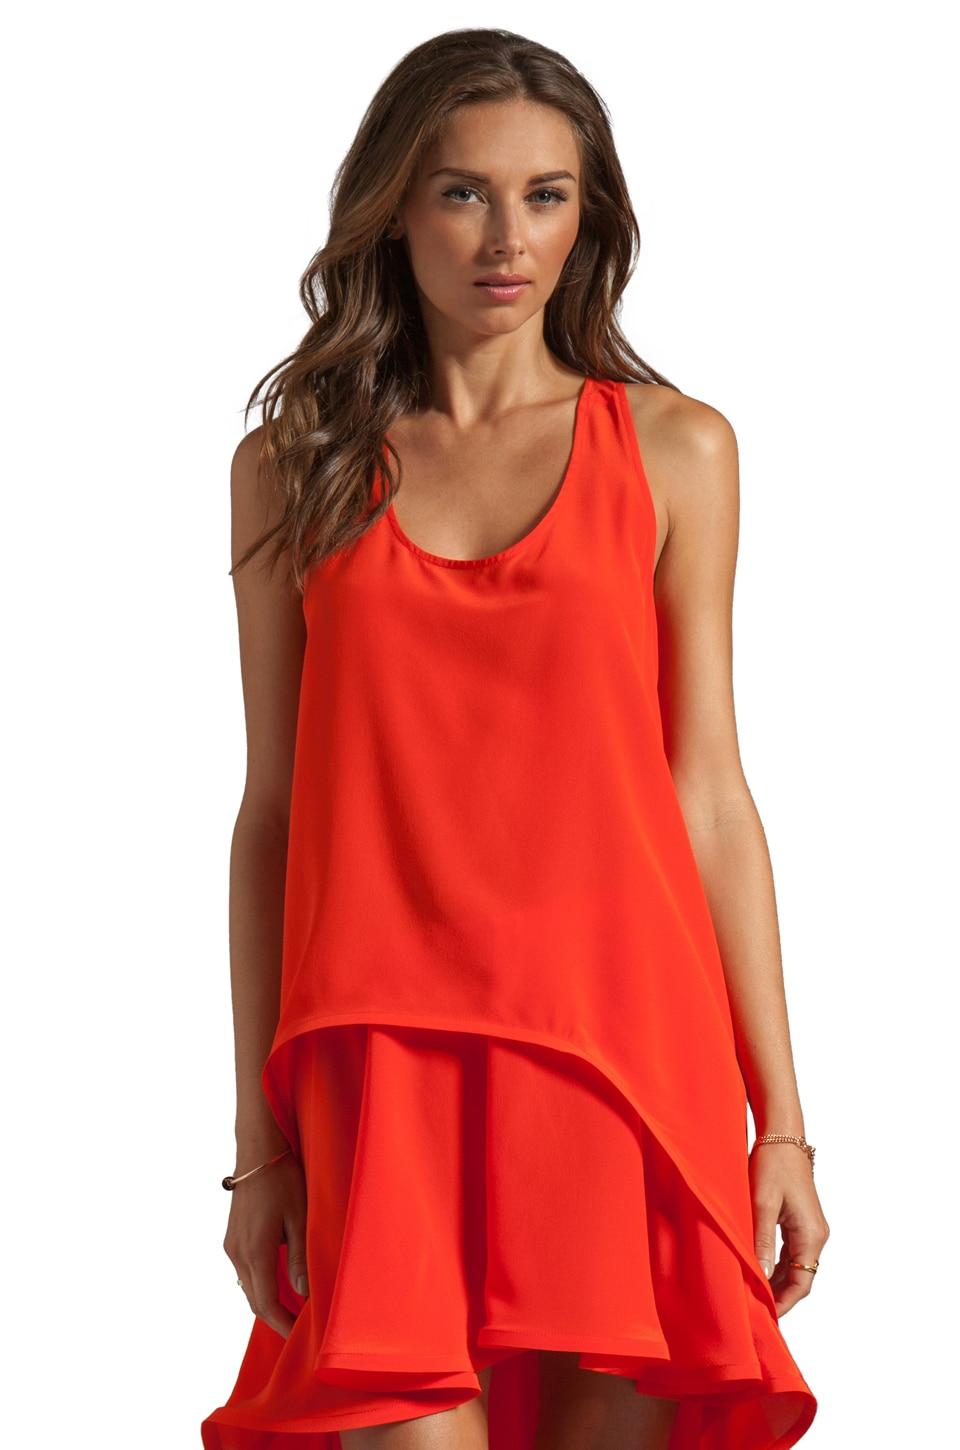 Alexis Ernesta High-Low Racer Back Top in Red Orange